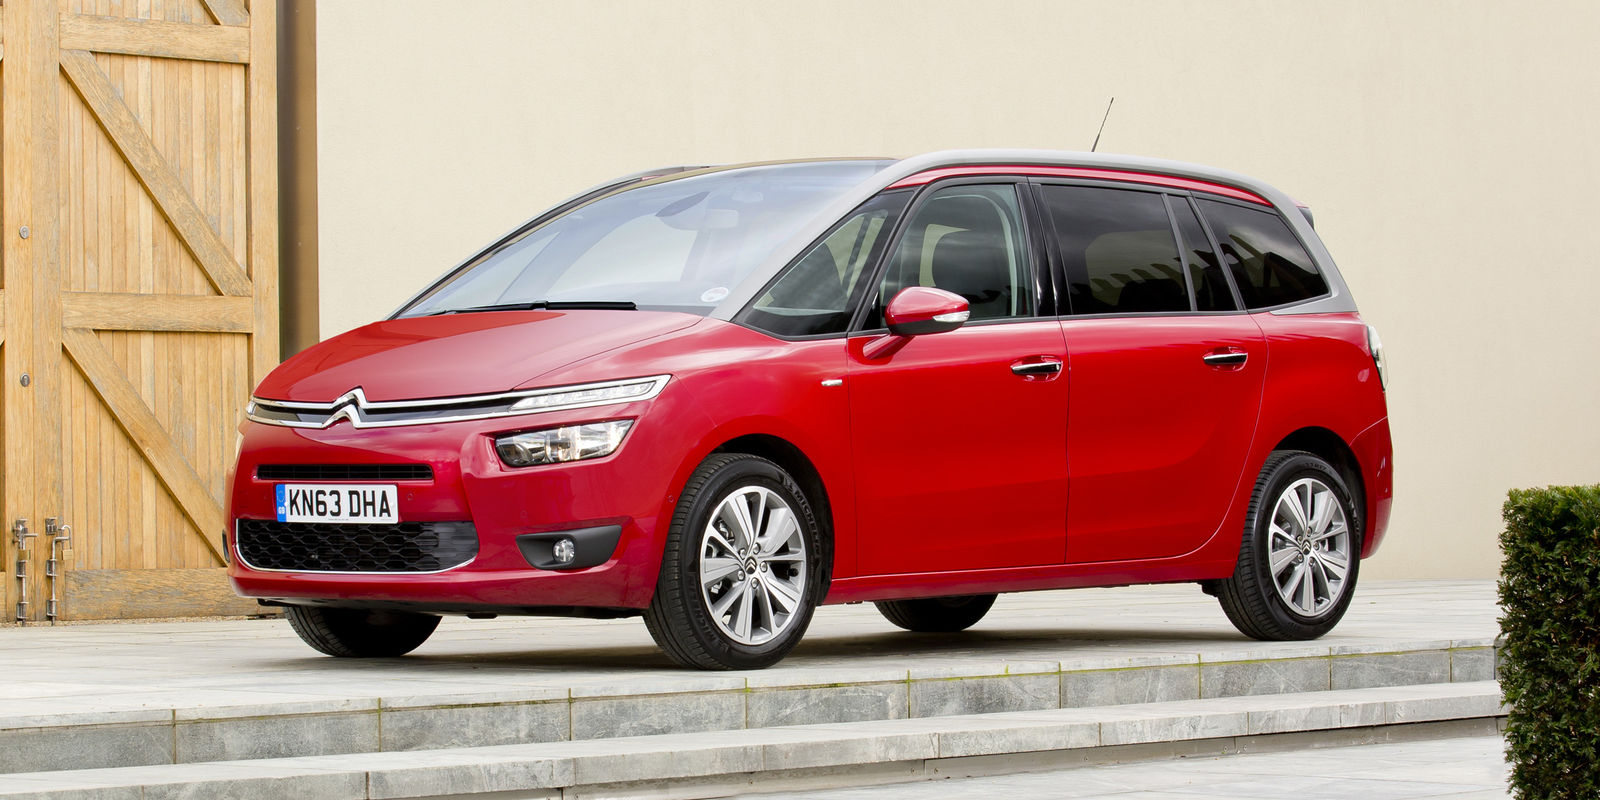 citroen c4 grand picasso review deals carwow. Black Bedroom Furniture Sets. Home Design Ideas